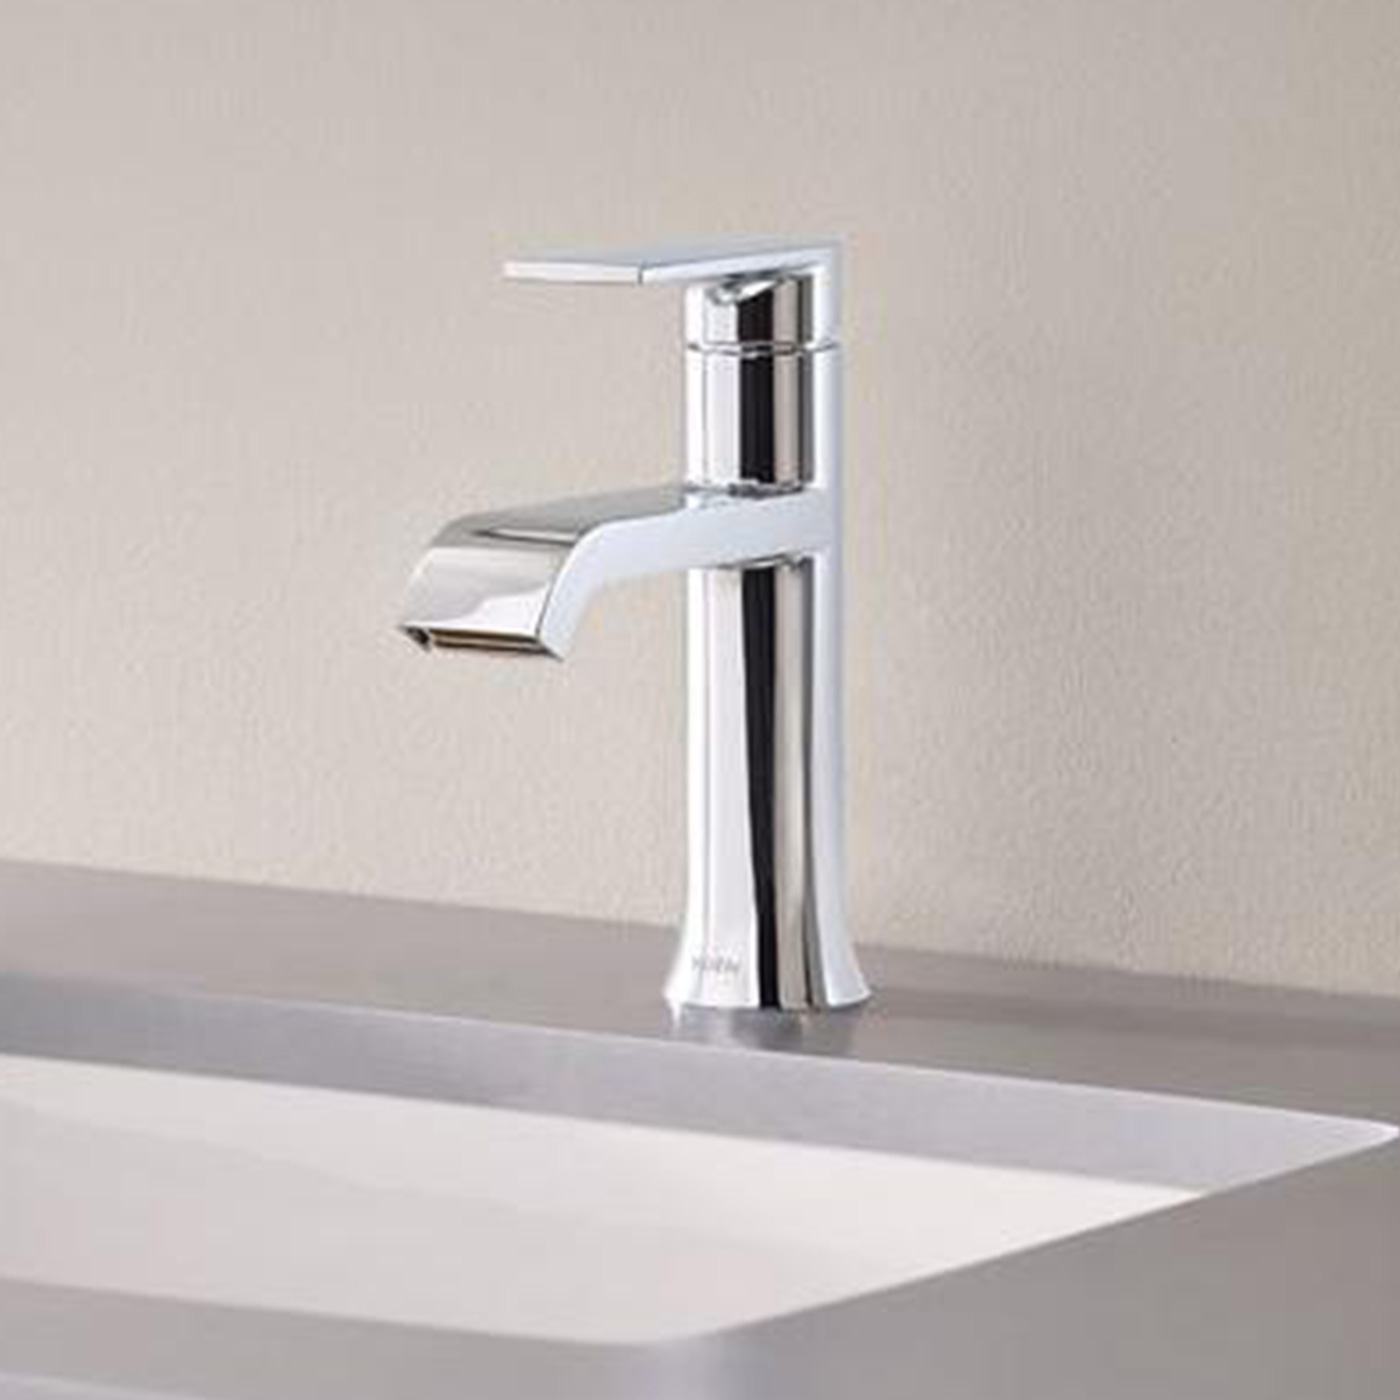 Bathroom Faucets For Your Sink Shower Head And Bathtub The Home Depot - Faucet for sink in bathroom